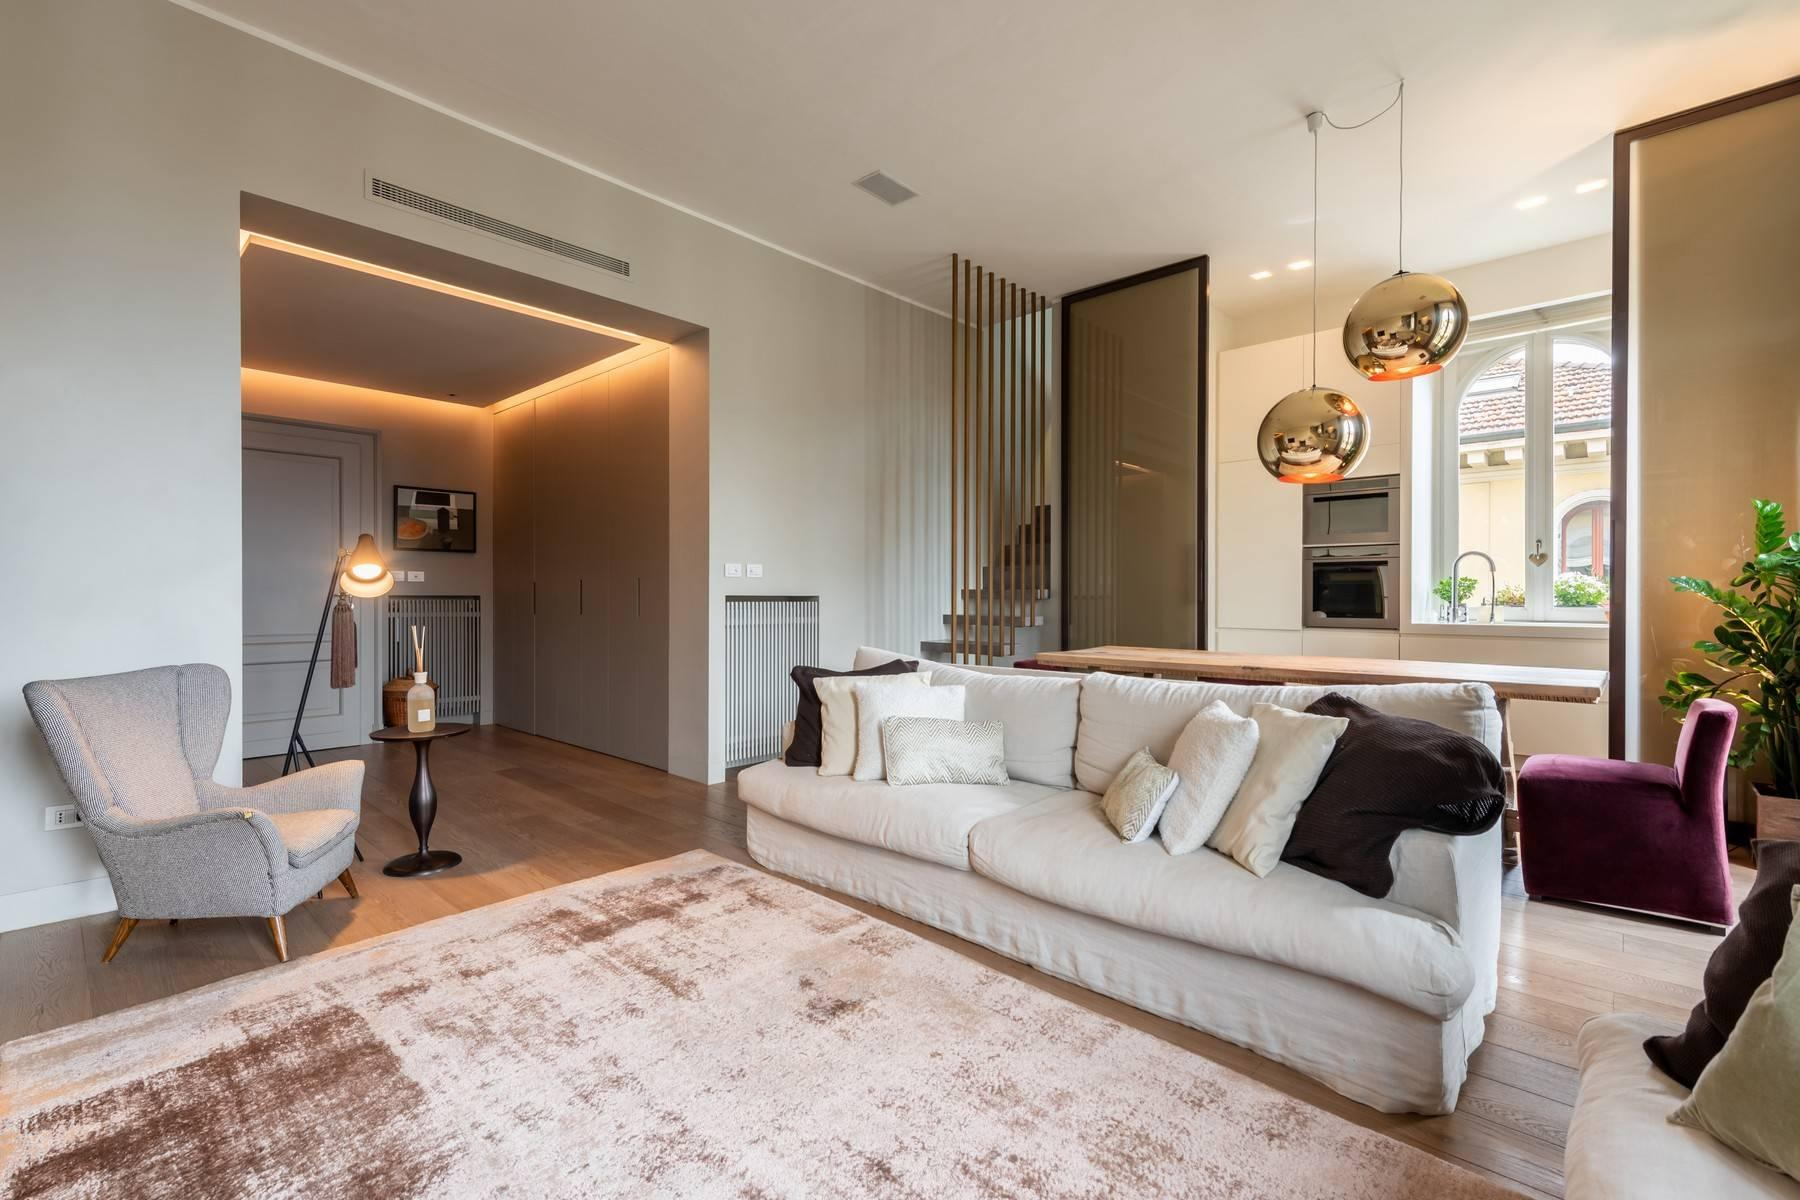 Beautiful penthouse perfectly renovated with great taste - 3